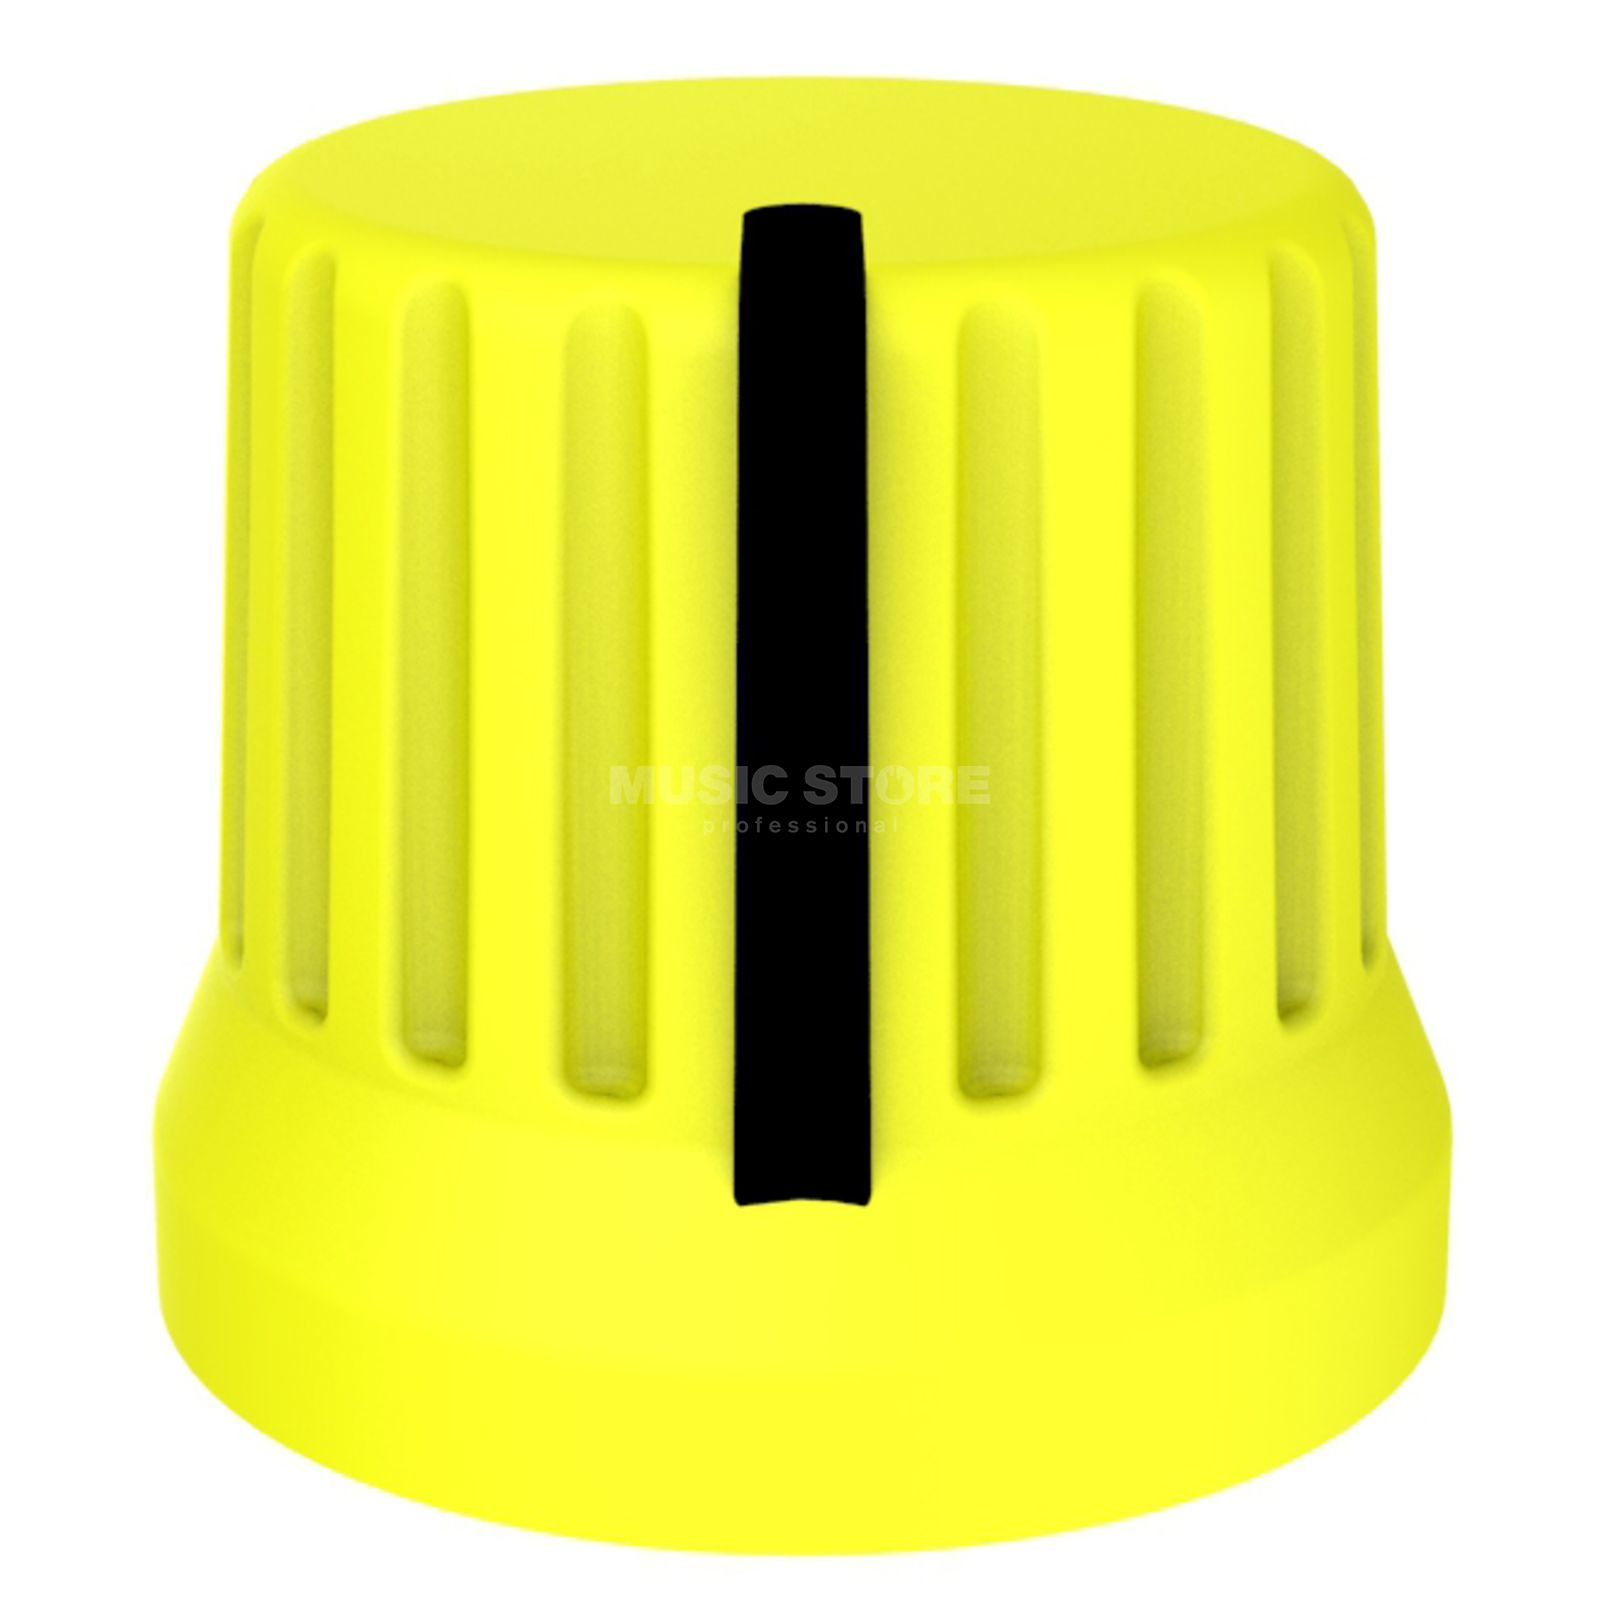 DJ TECHTOOLS Chroma Caps Fatty knop yellow  Productafbeelding